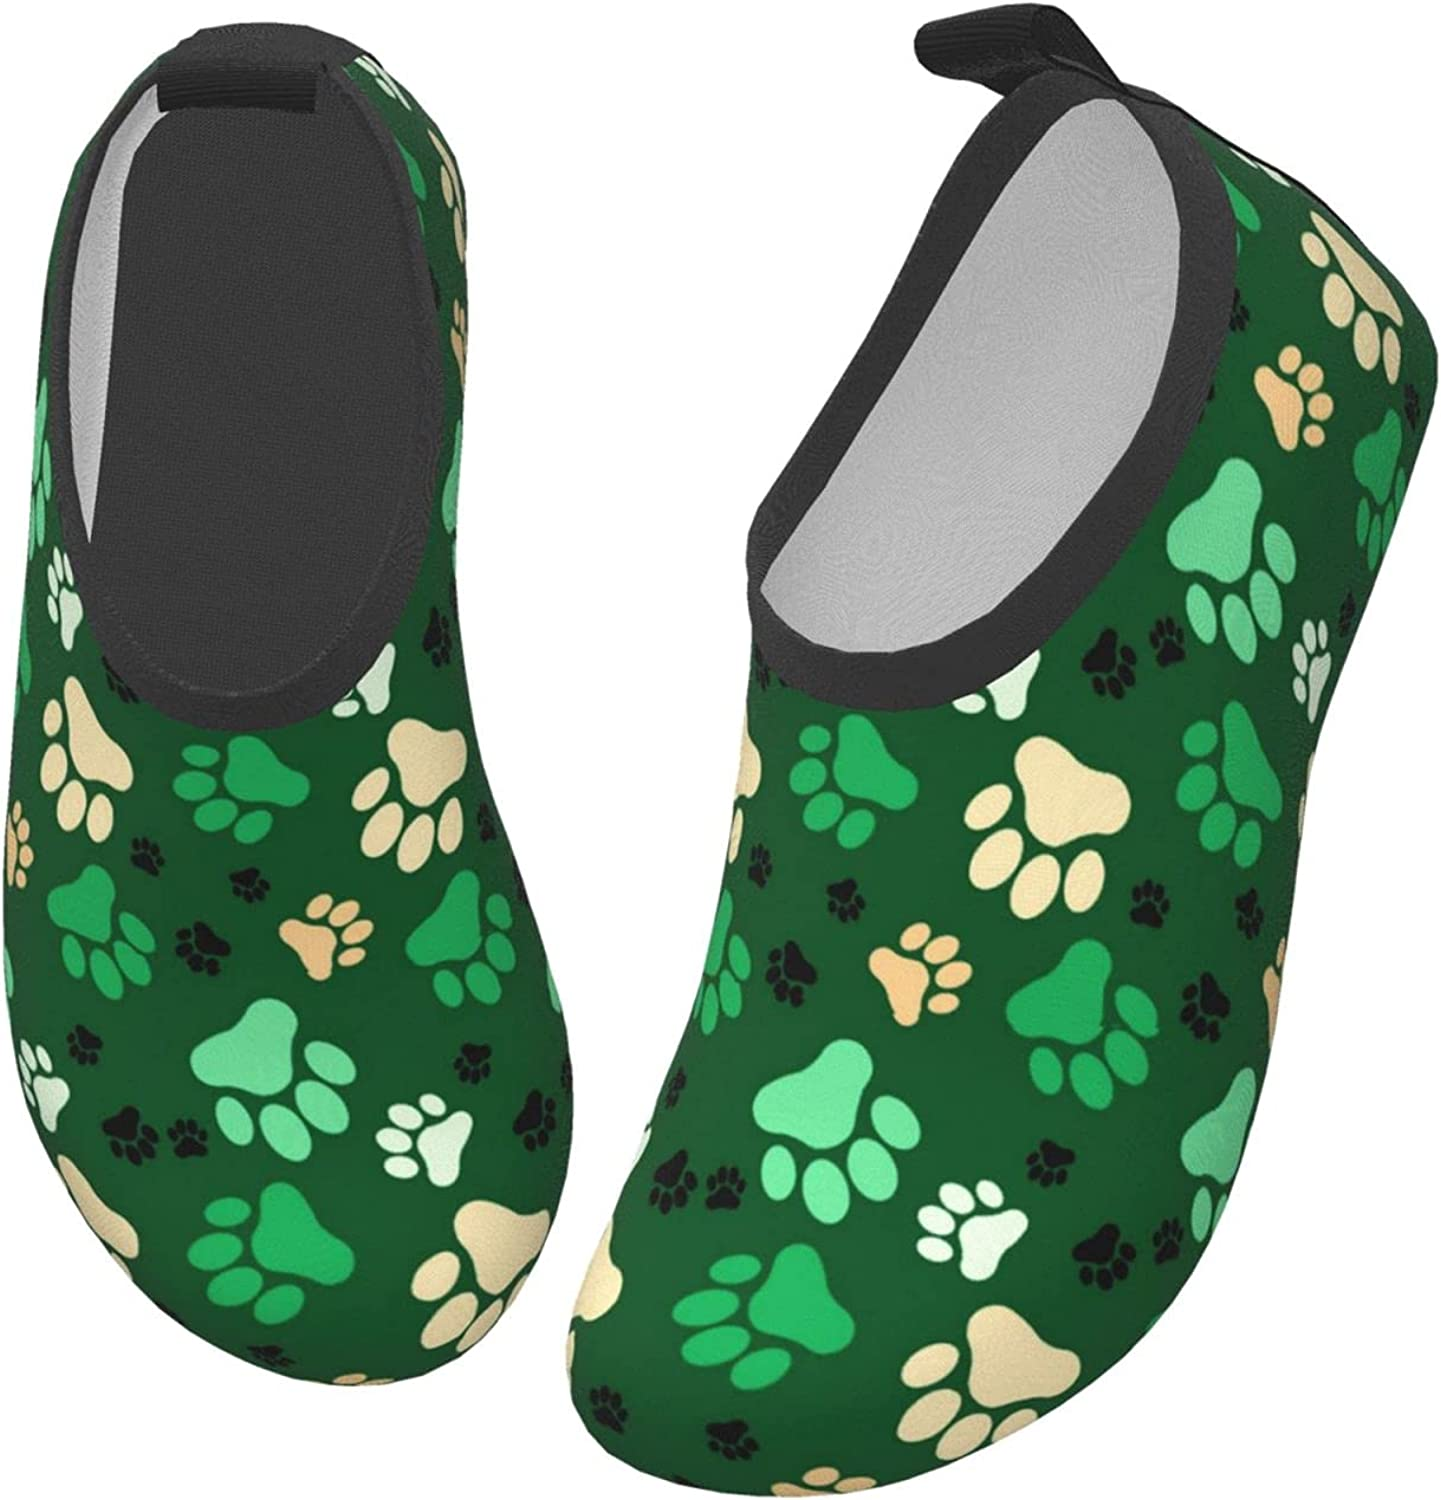 Cute Hand Drawn Dog Paw Prints Doodles Water Shoes for Children Beach Aqua Shoes Swim Shoes for Girls Quick Dry Barefoot for Upstream Surfing with Drainage